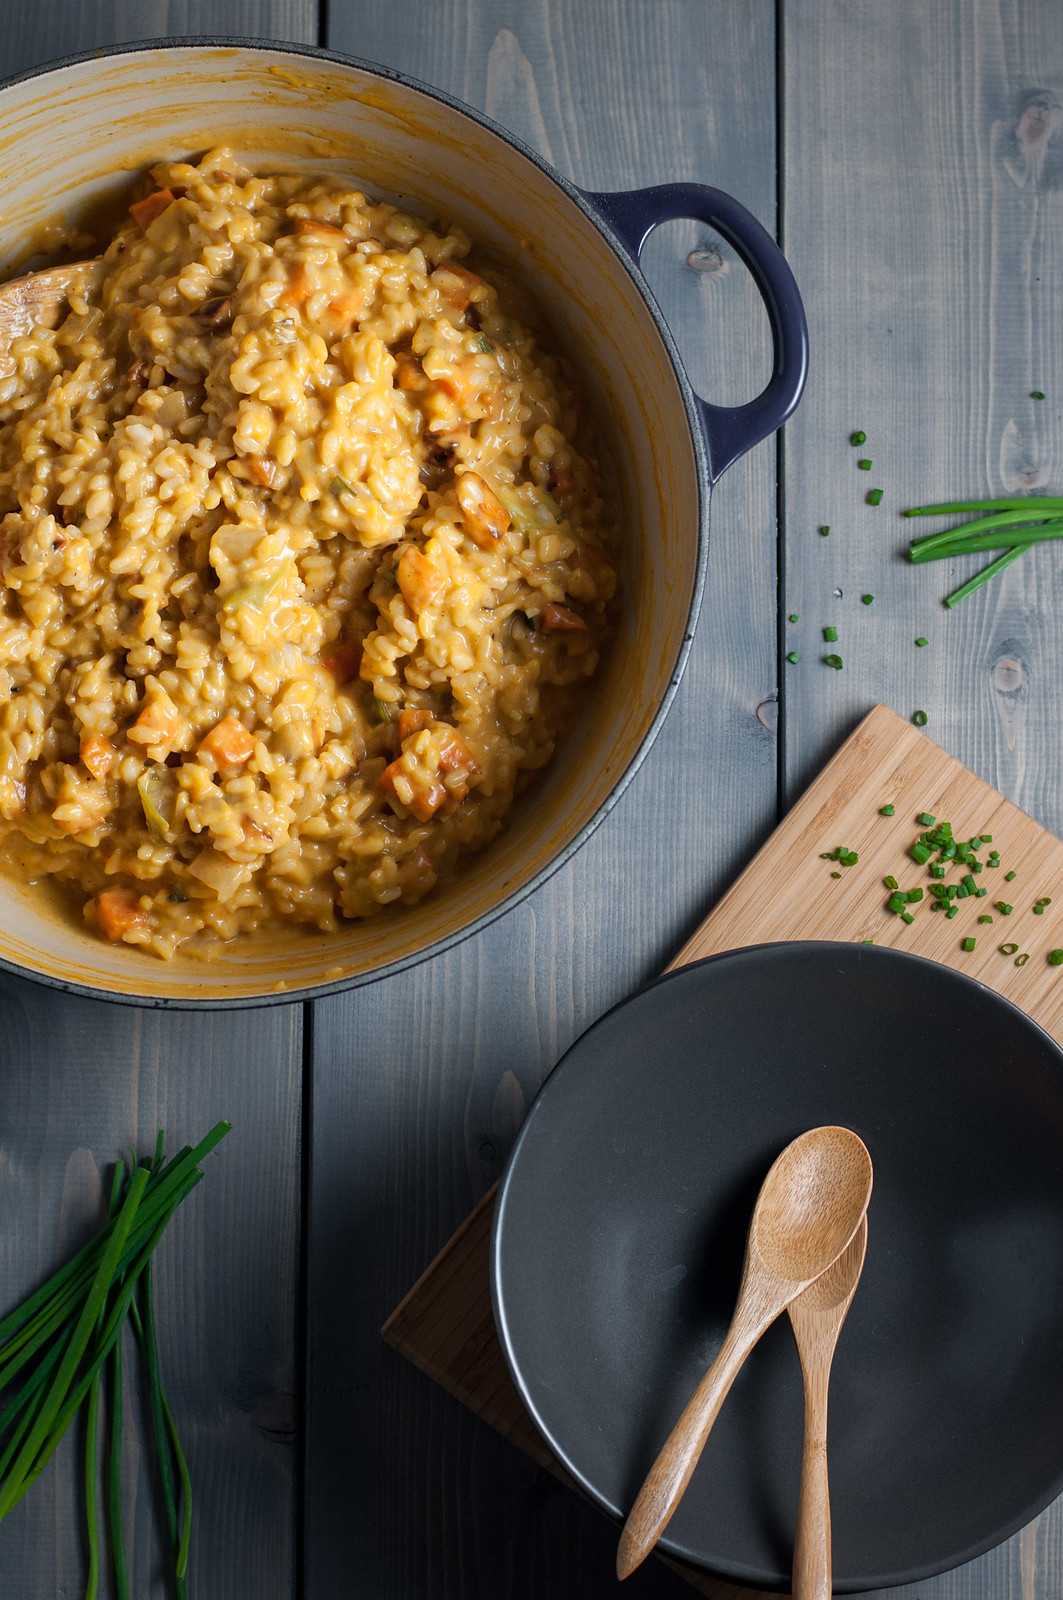 Meatless (and gluten free) loaded sweet potato risotto